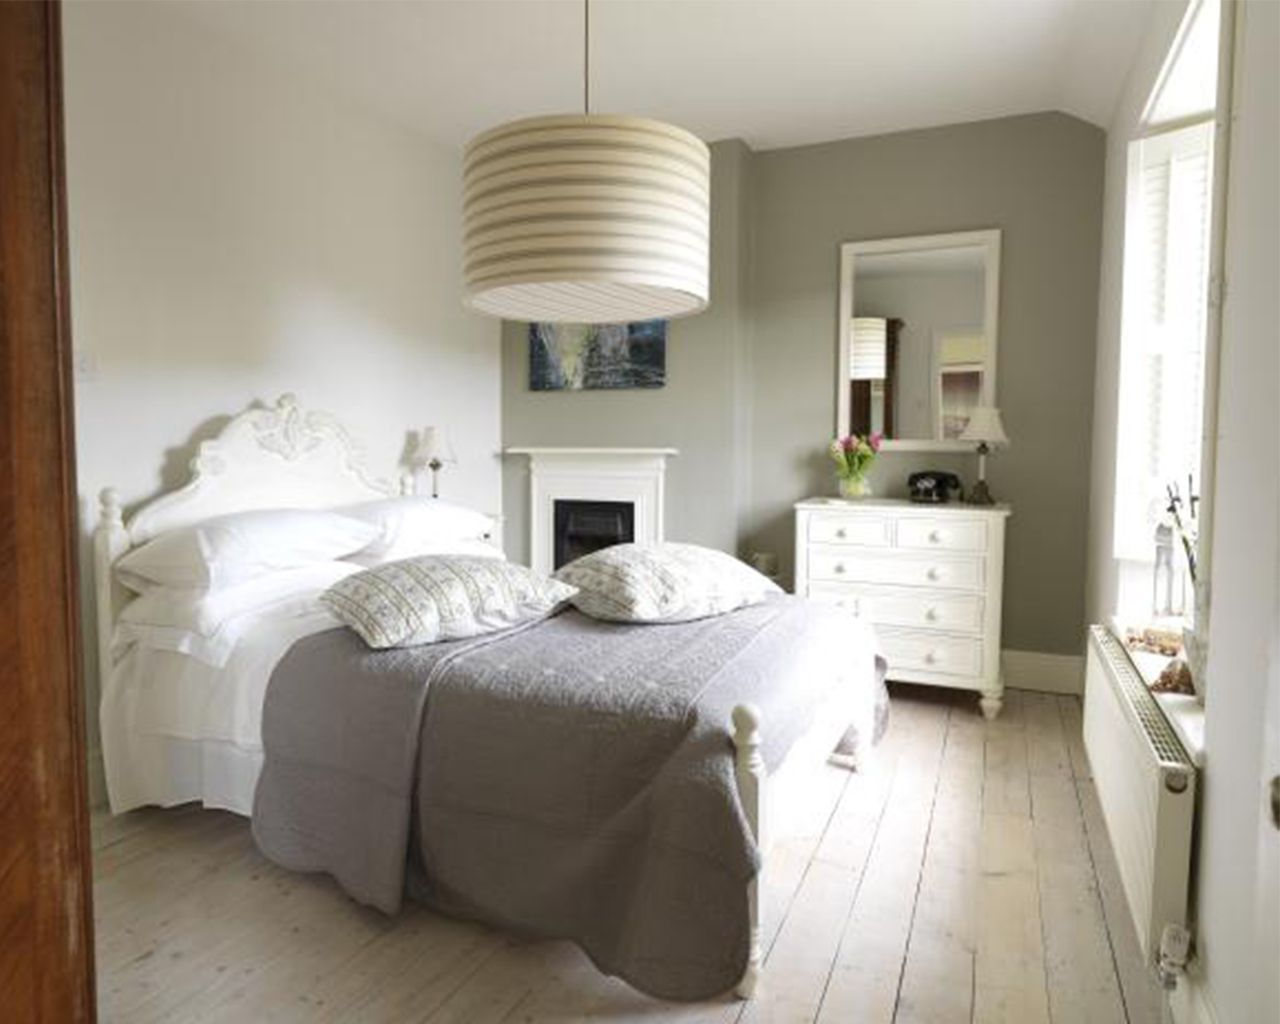 millhouse b&b yorkshire great earthy natural colours, lots of